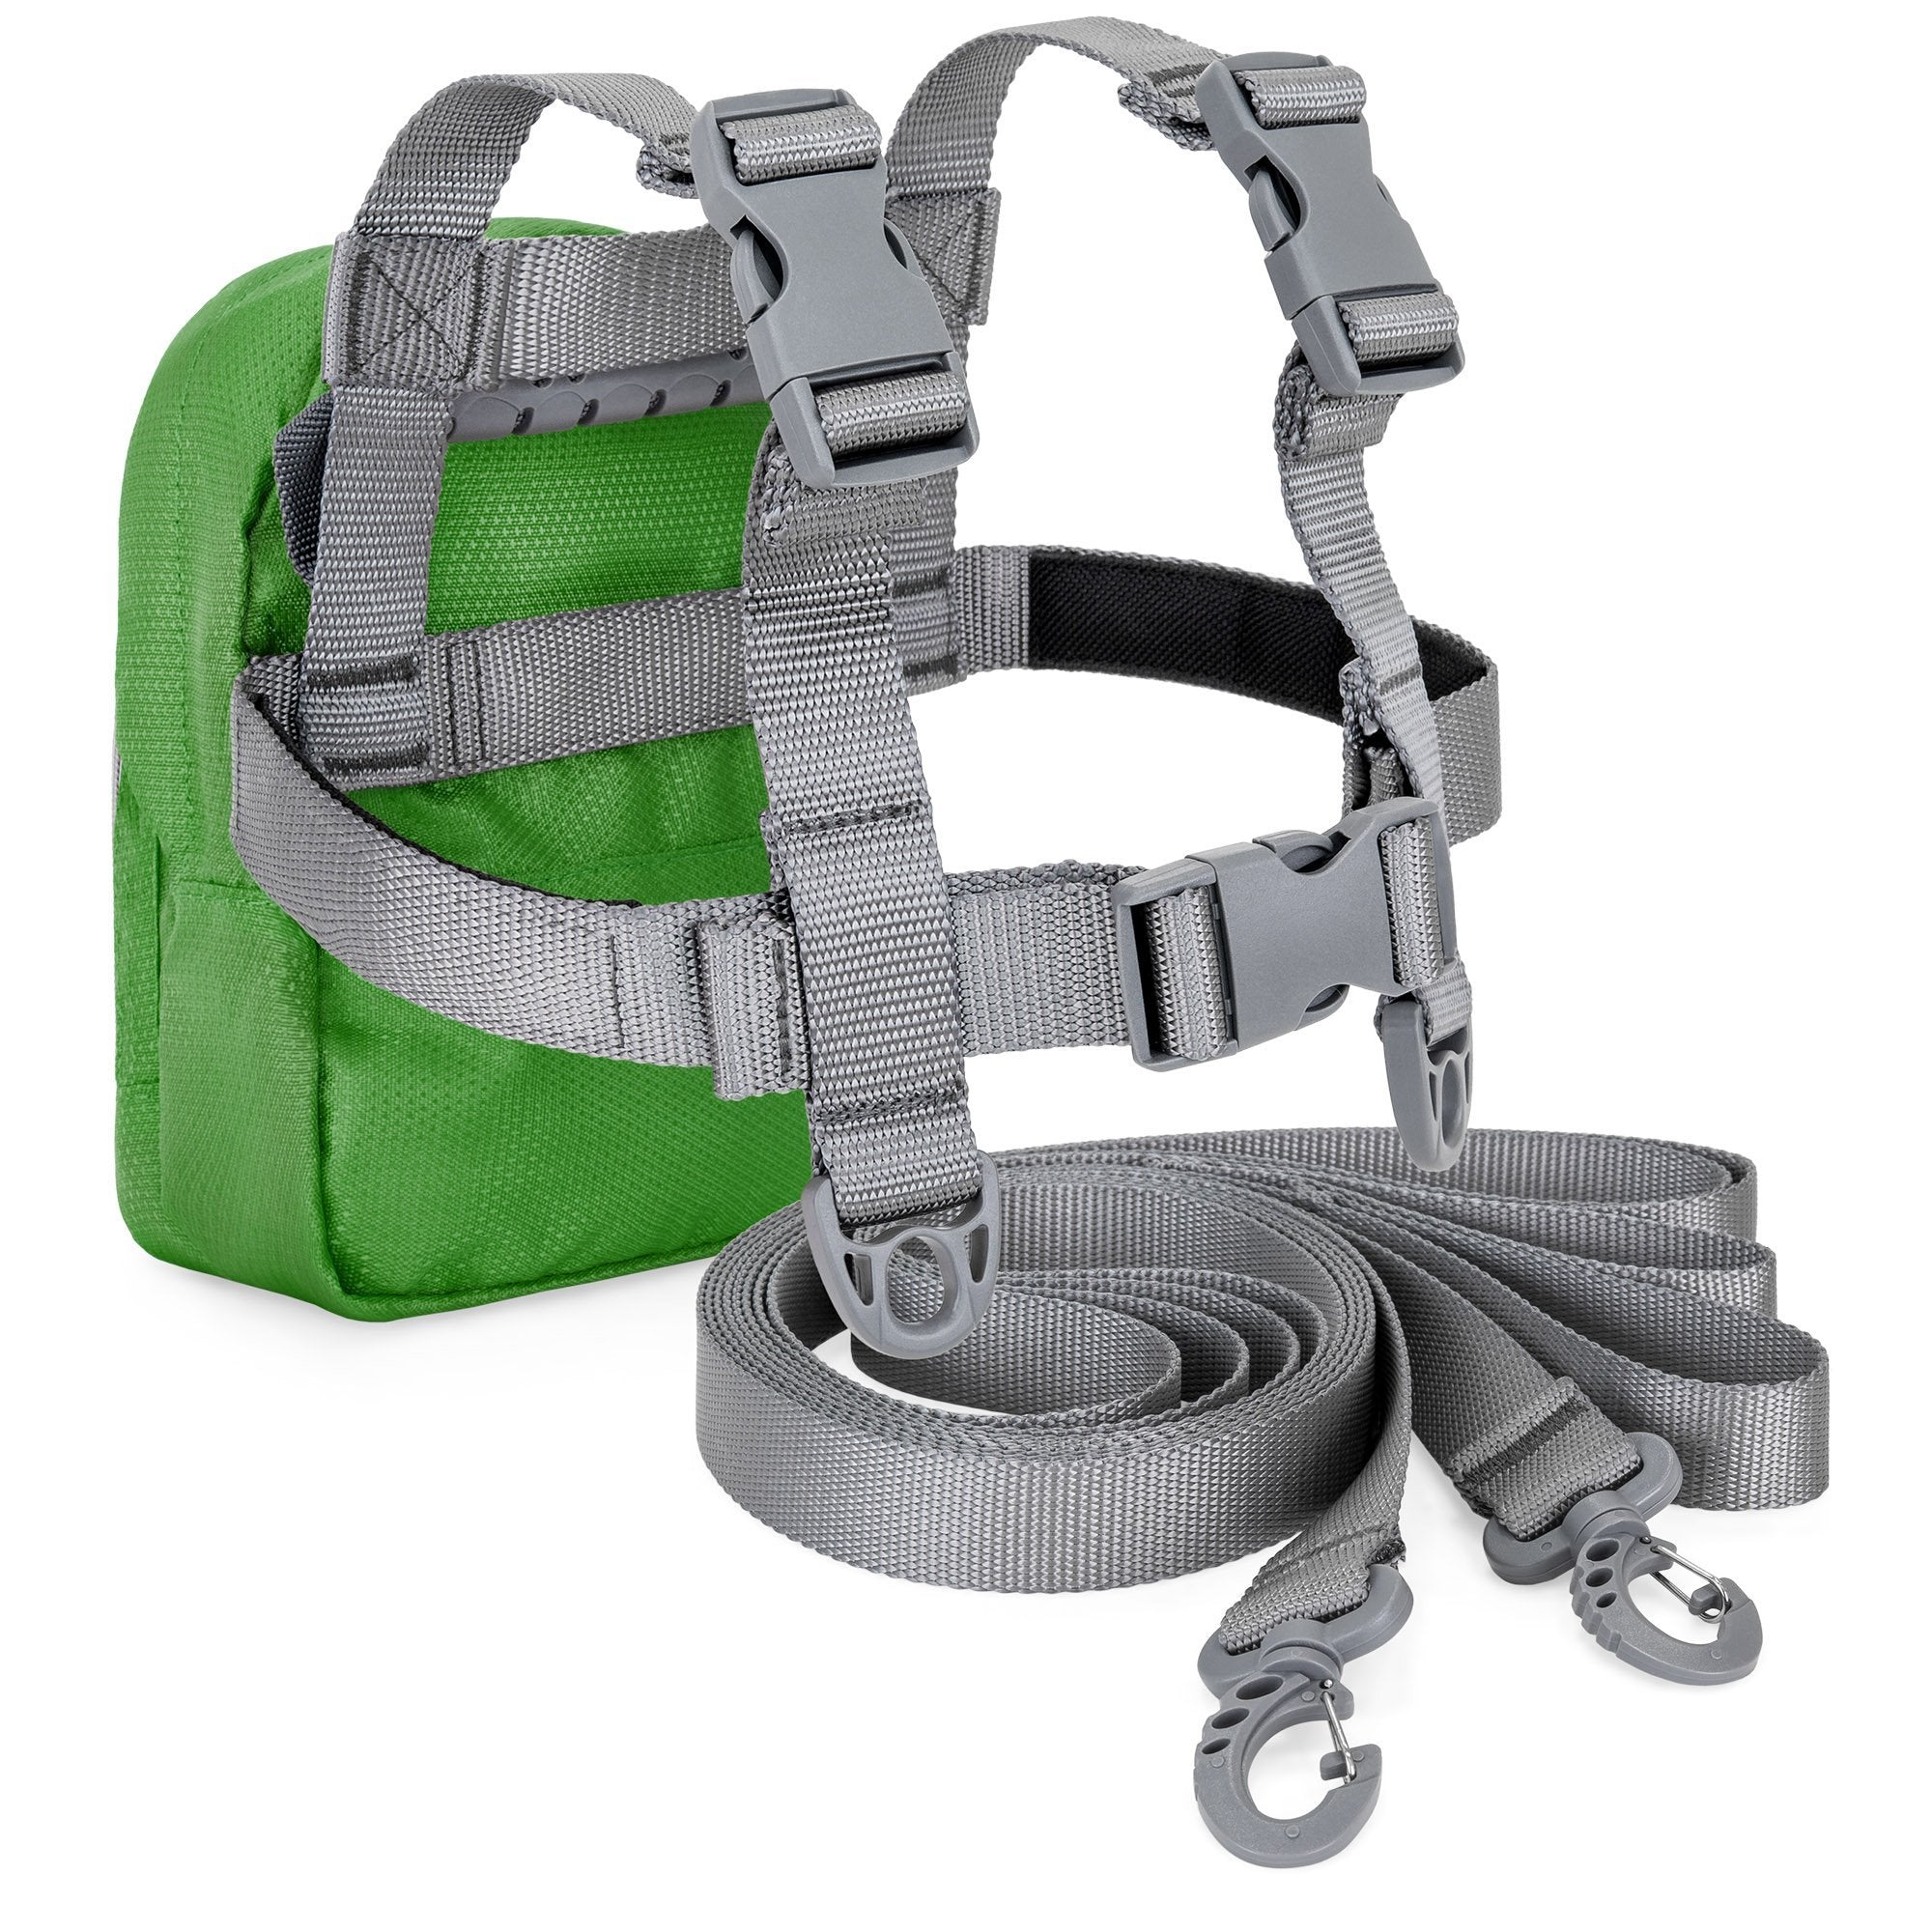 Kids Adjustable Ski Training Harness w/ Leashes, Backpack